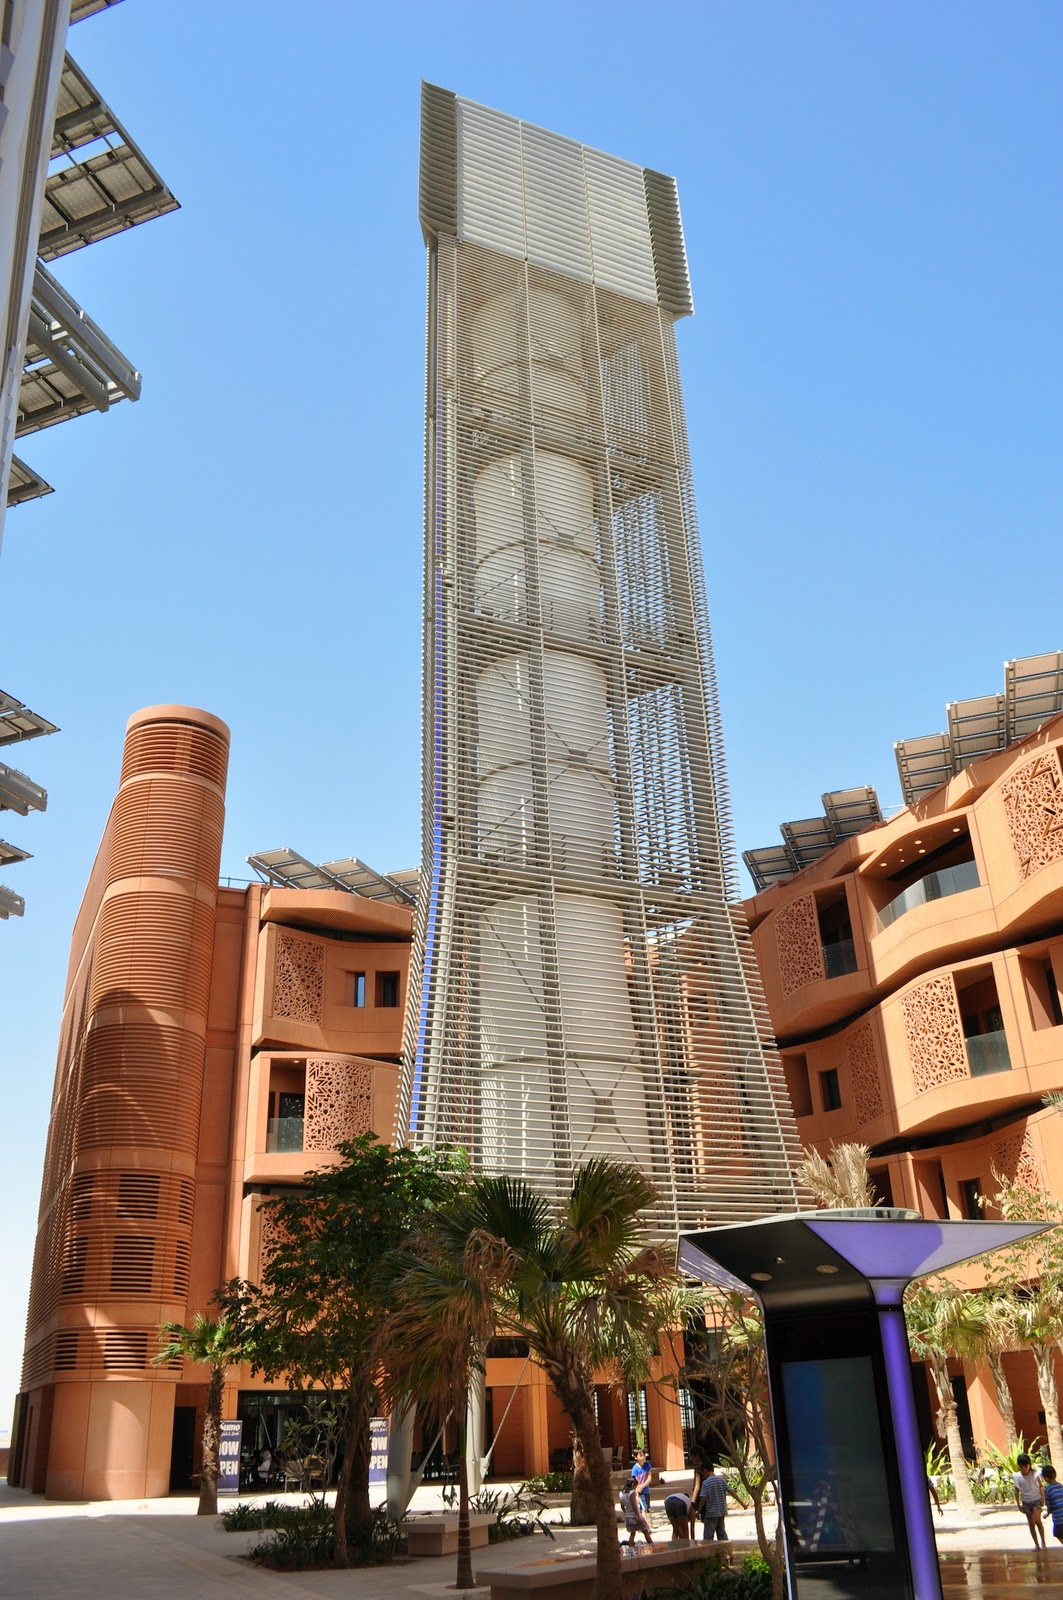 Masdar City The City Of The Future By Mohamed Al Meqbali